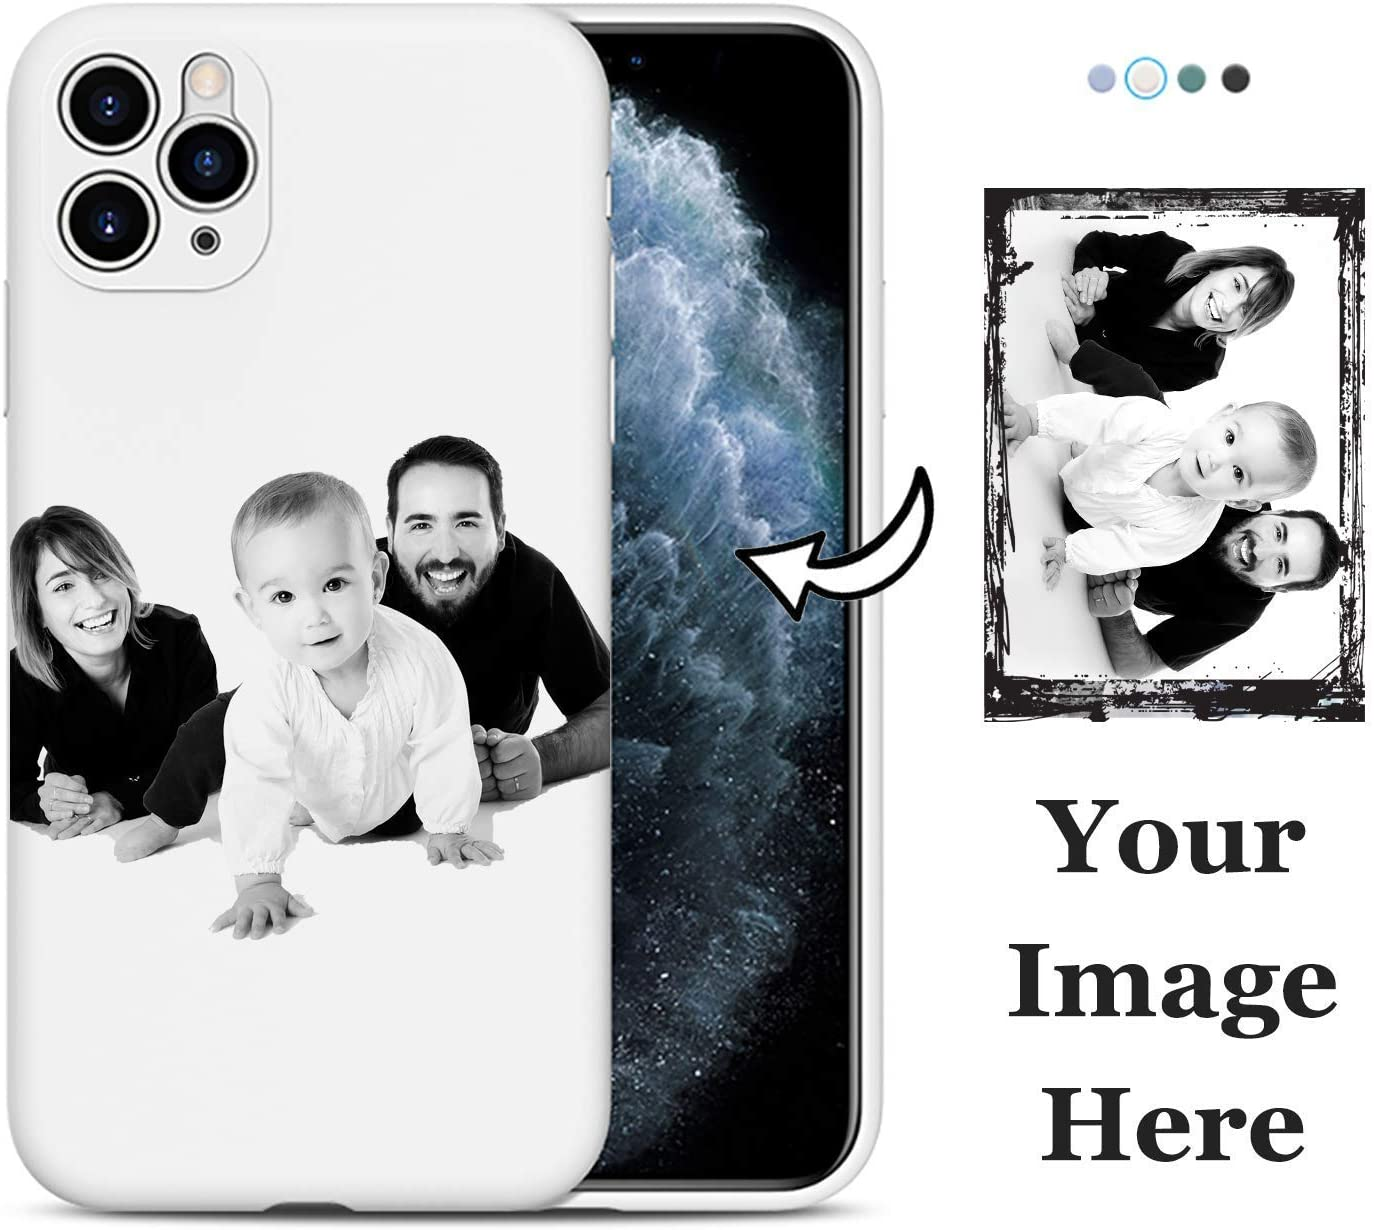 Z.Y Custom Apple iPhone 11 Pro Max | Xr | Gel Rubber Full Body Protection + Screen Protector | Compatible with iPhone X Xs Max, Make Your Own Protective Picture Phone Cases (White, Liquid Silicone)